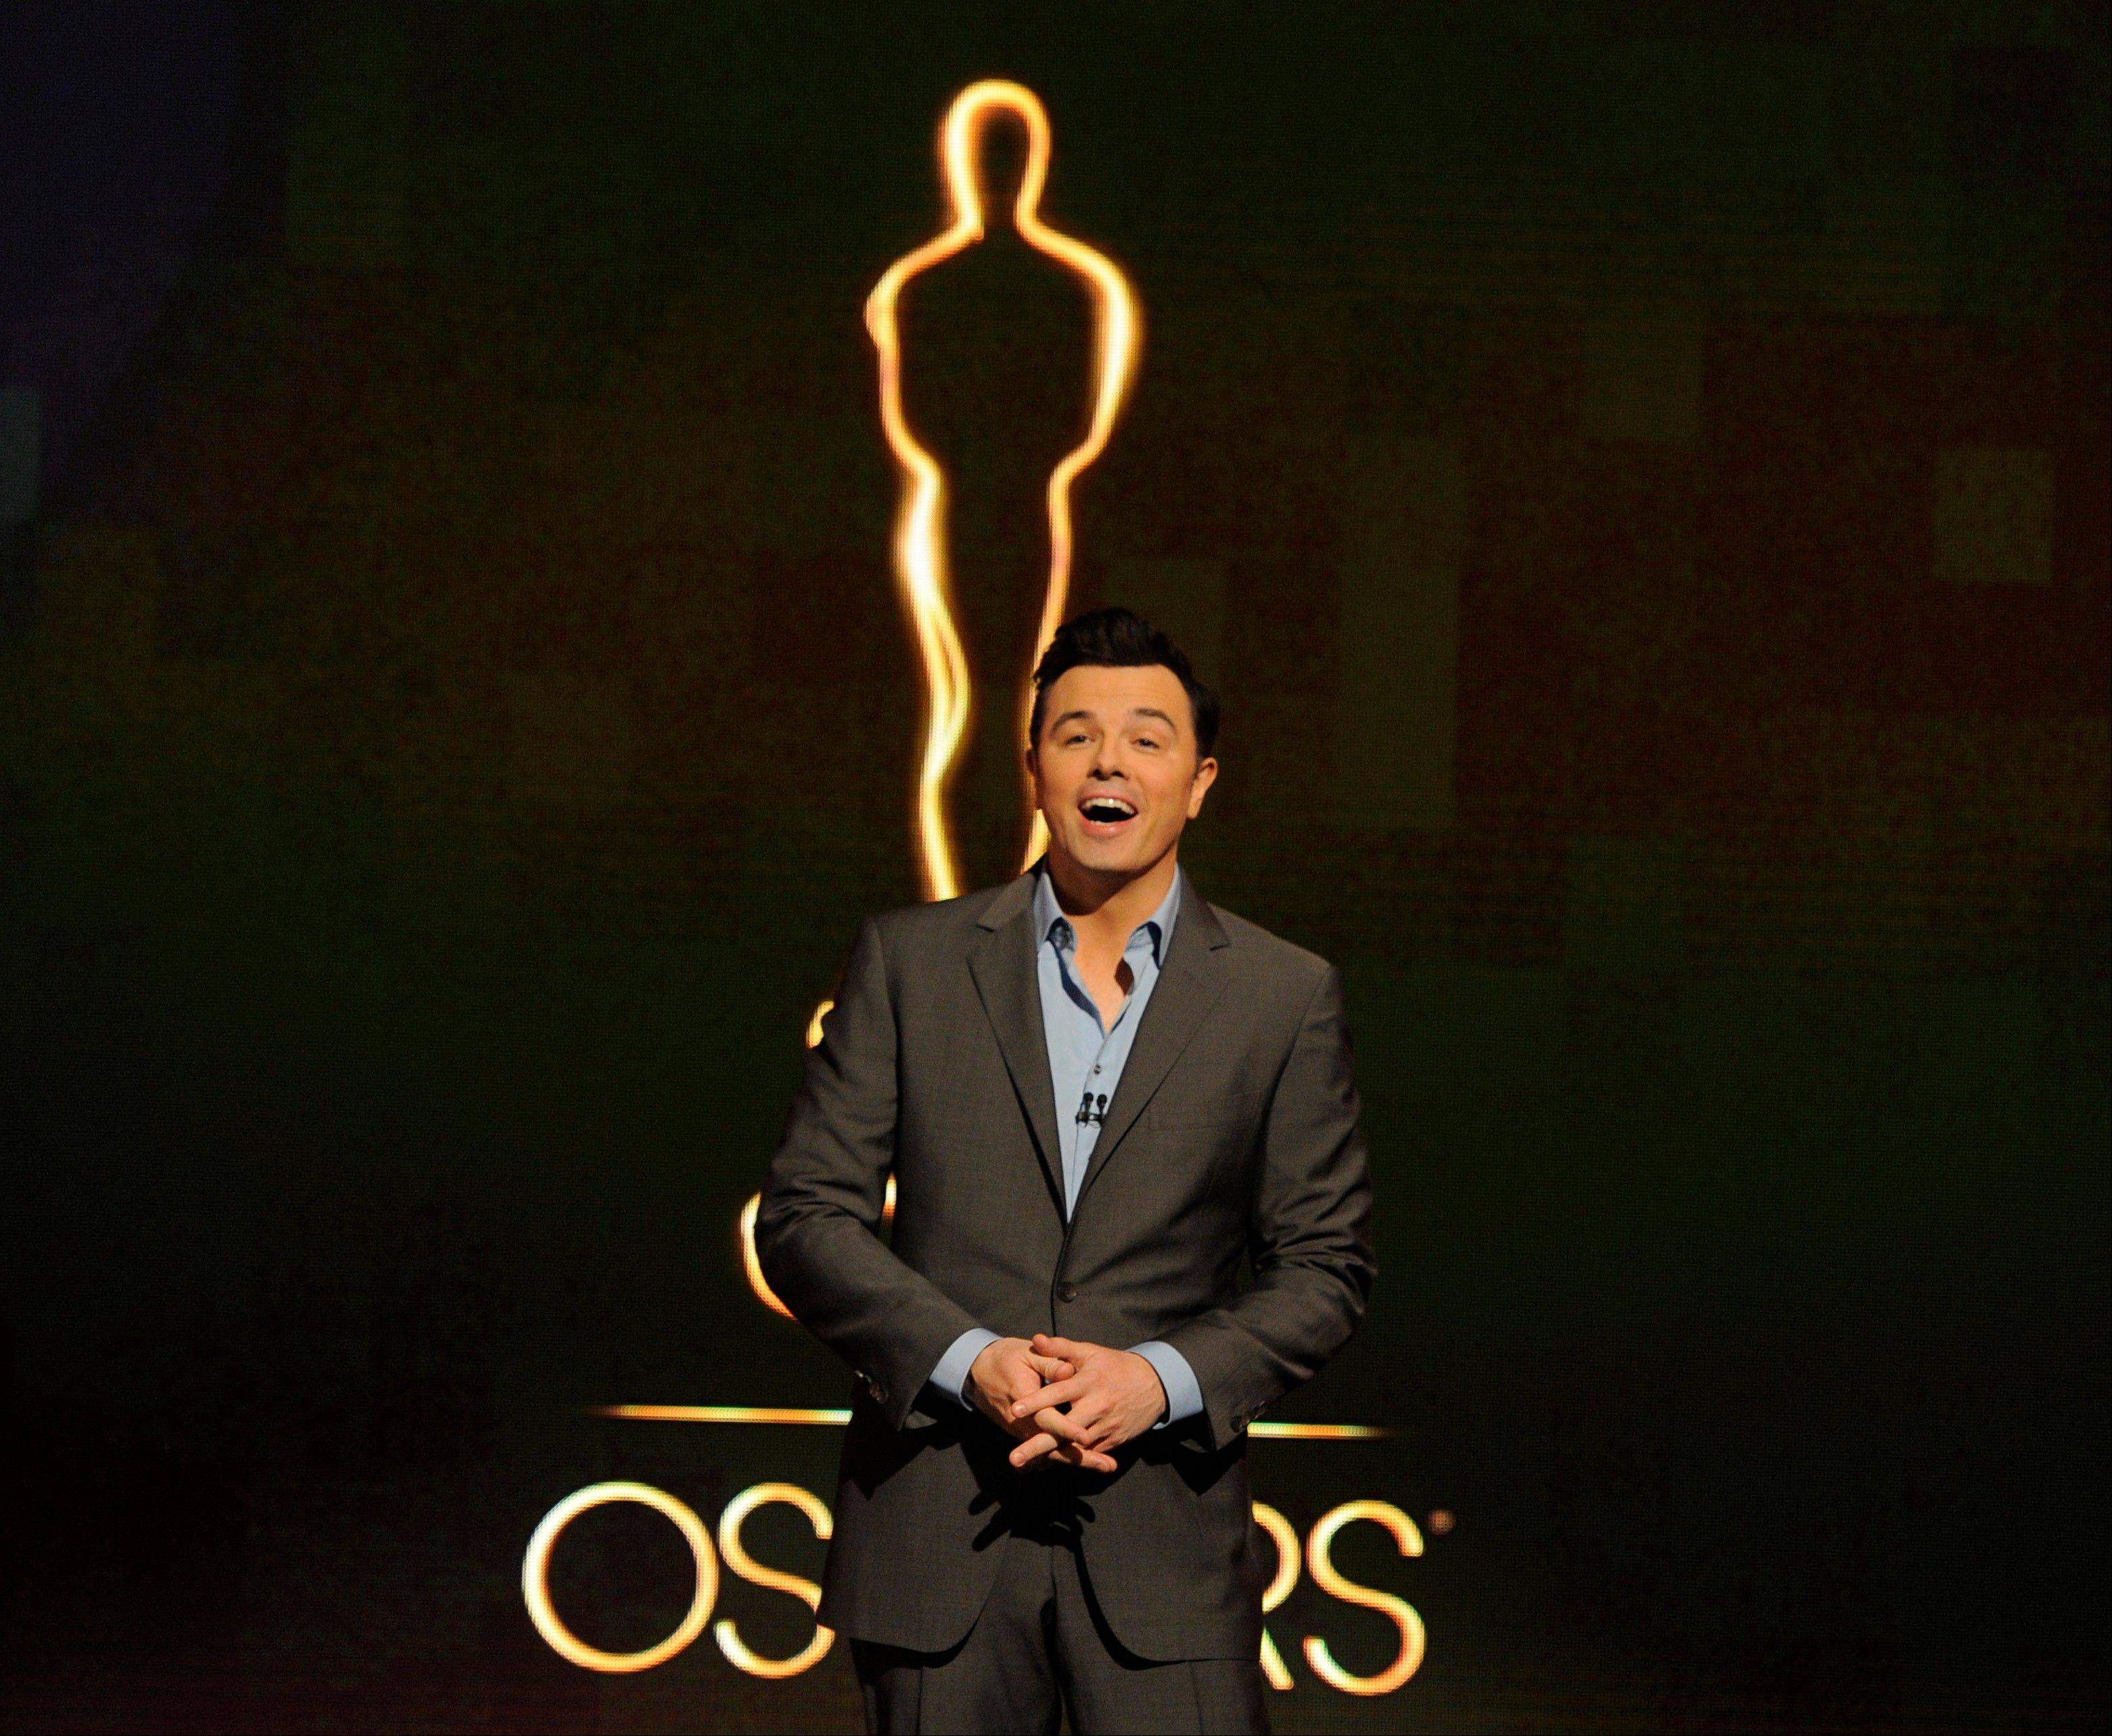 2013 Oscar host Seth MacFarlane may bring a cheekiness to Sunday�s show that prods younger viewers to check out the Oscars just to see what he might pull.